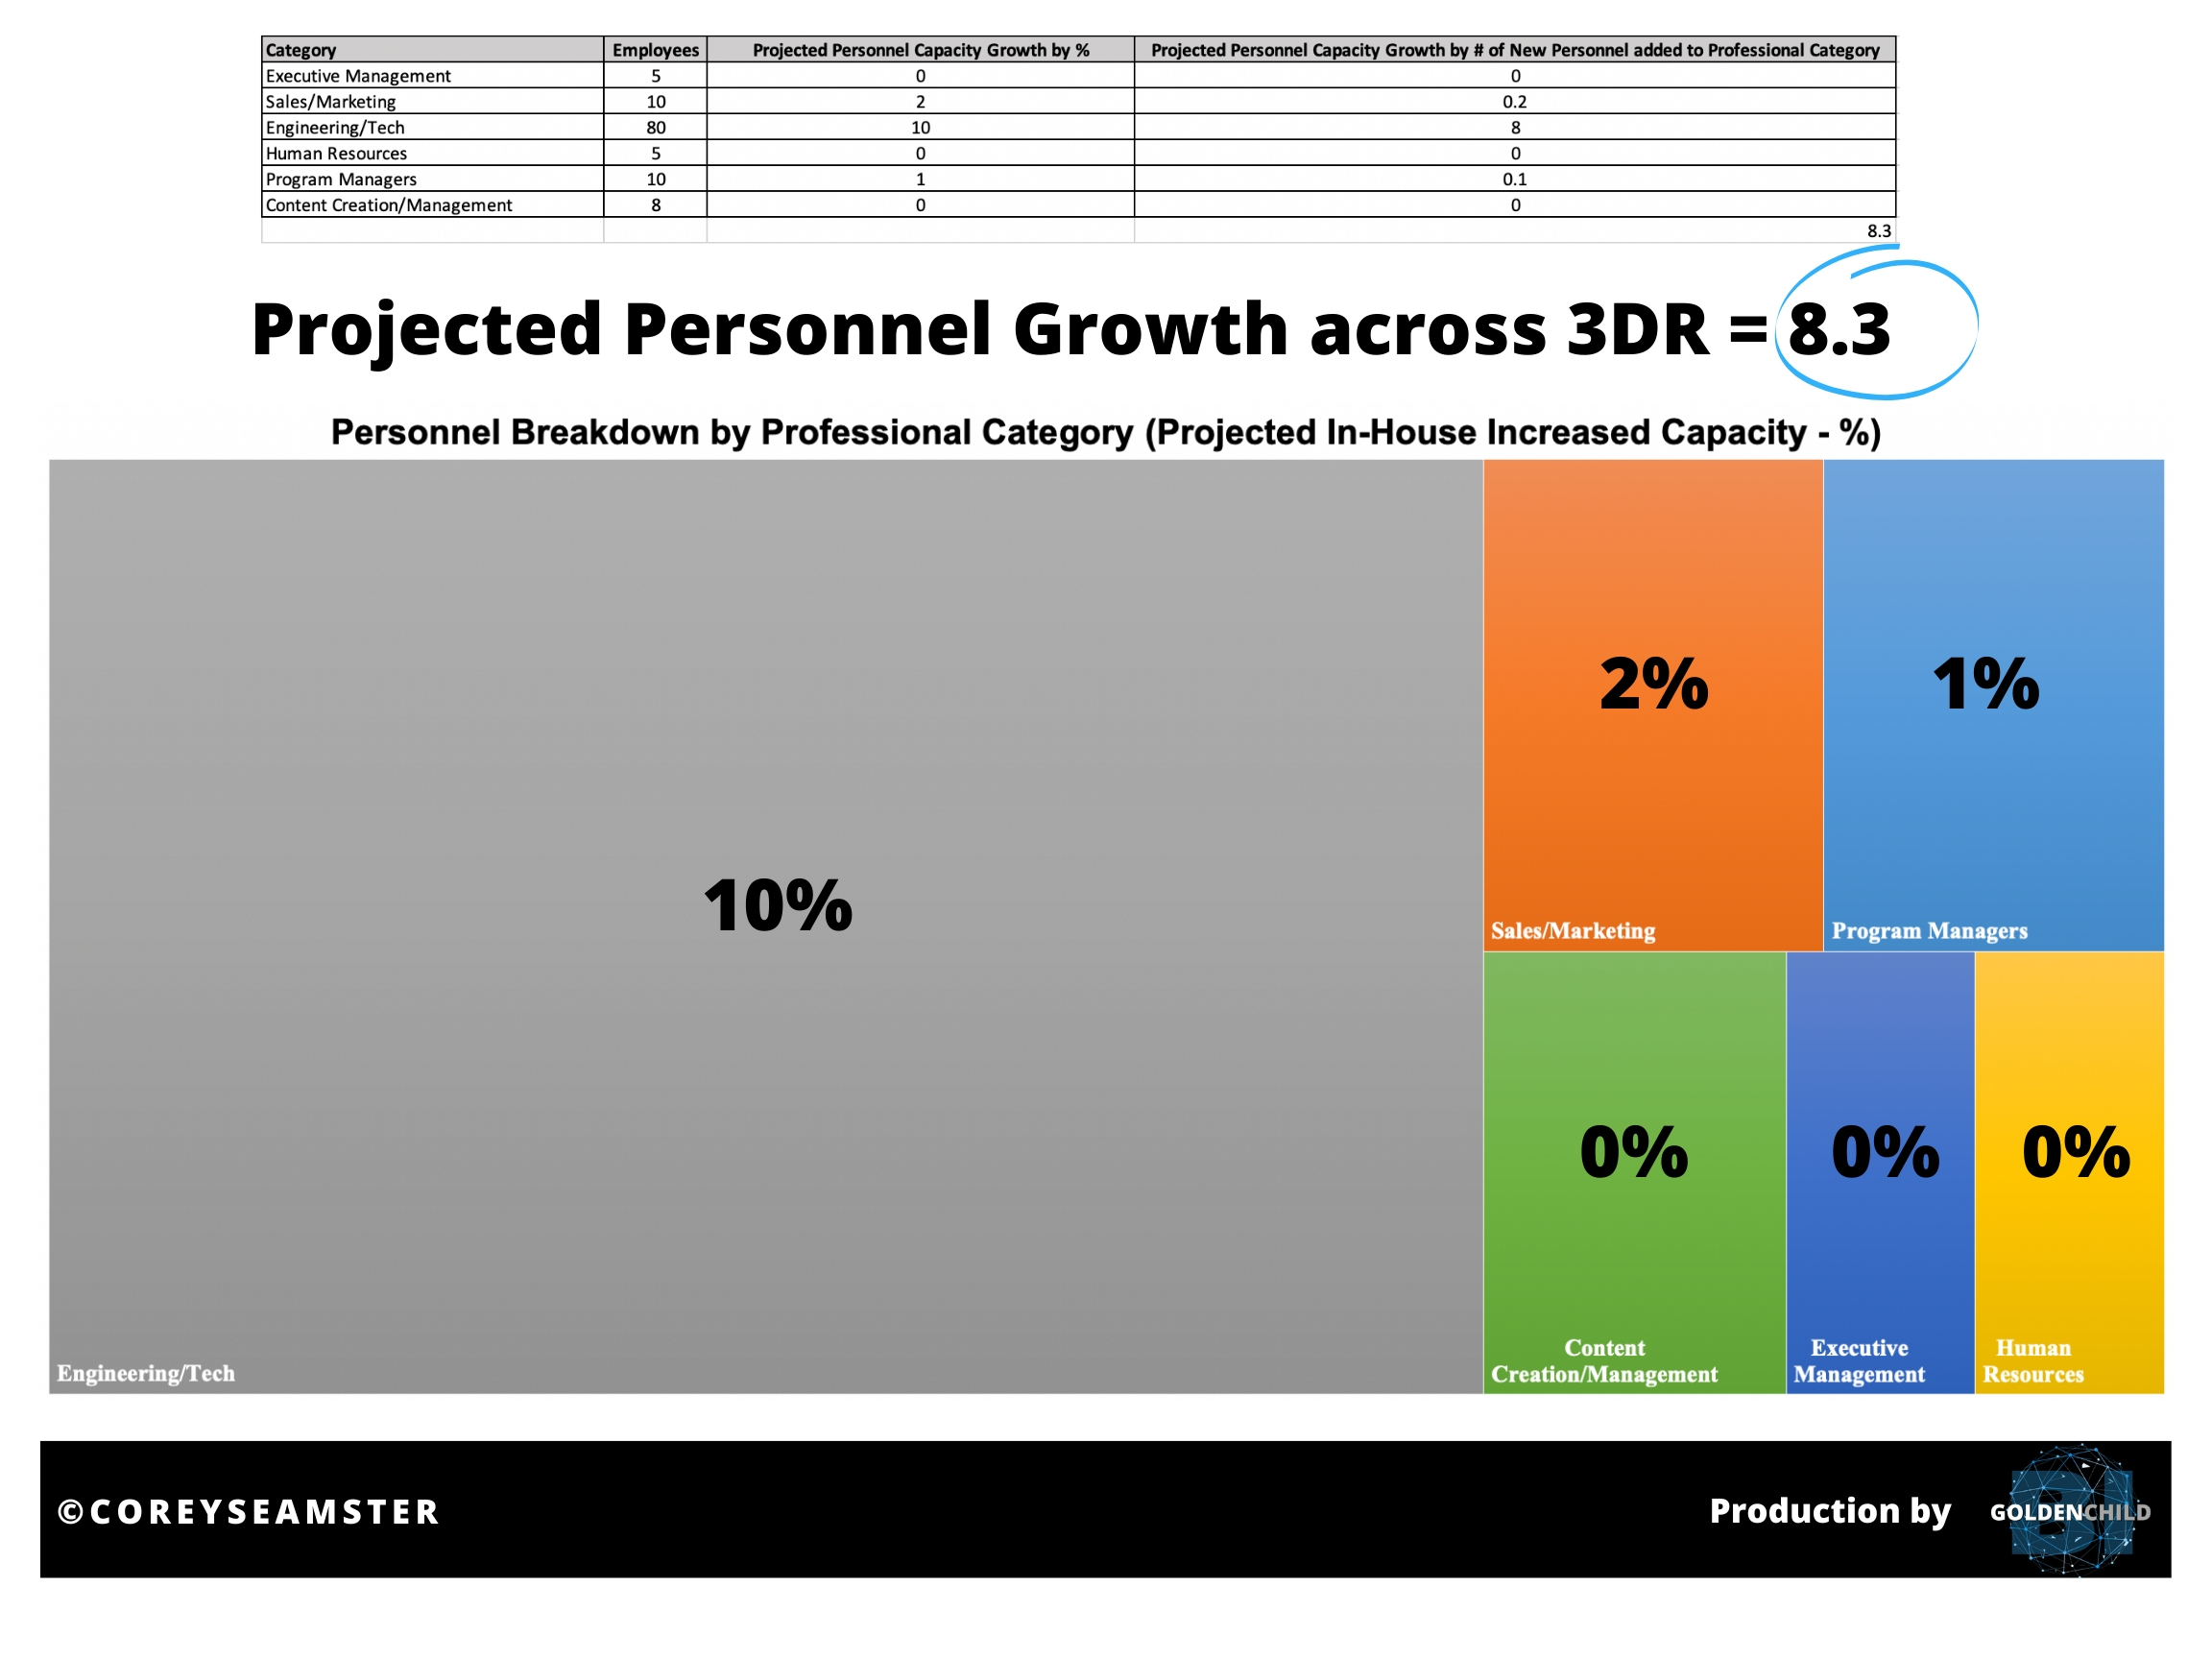 Source: Corey Seamster (2020) | Image: Projected Personnel Growth diagram based on sample data